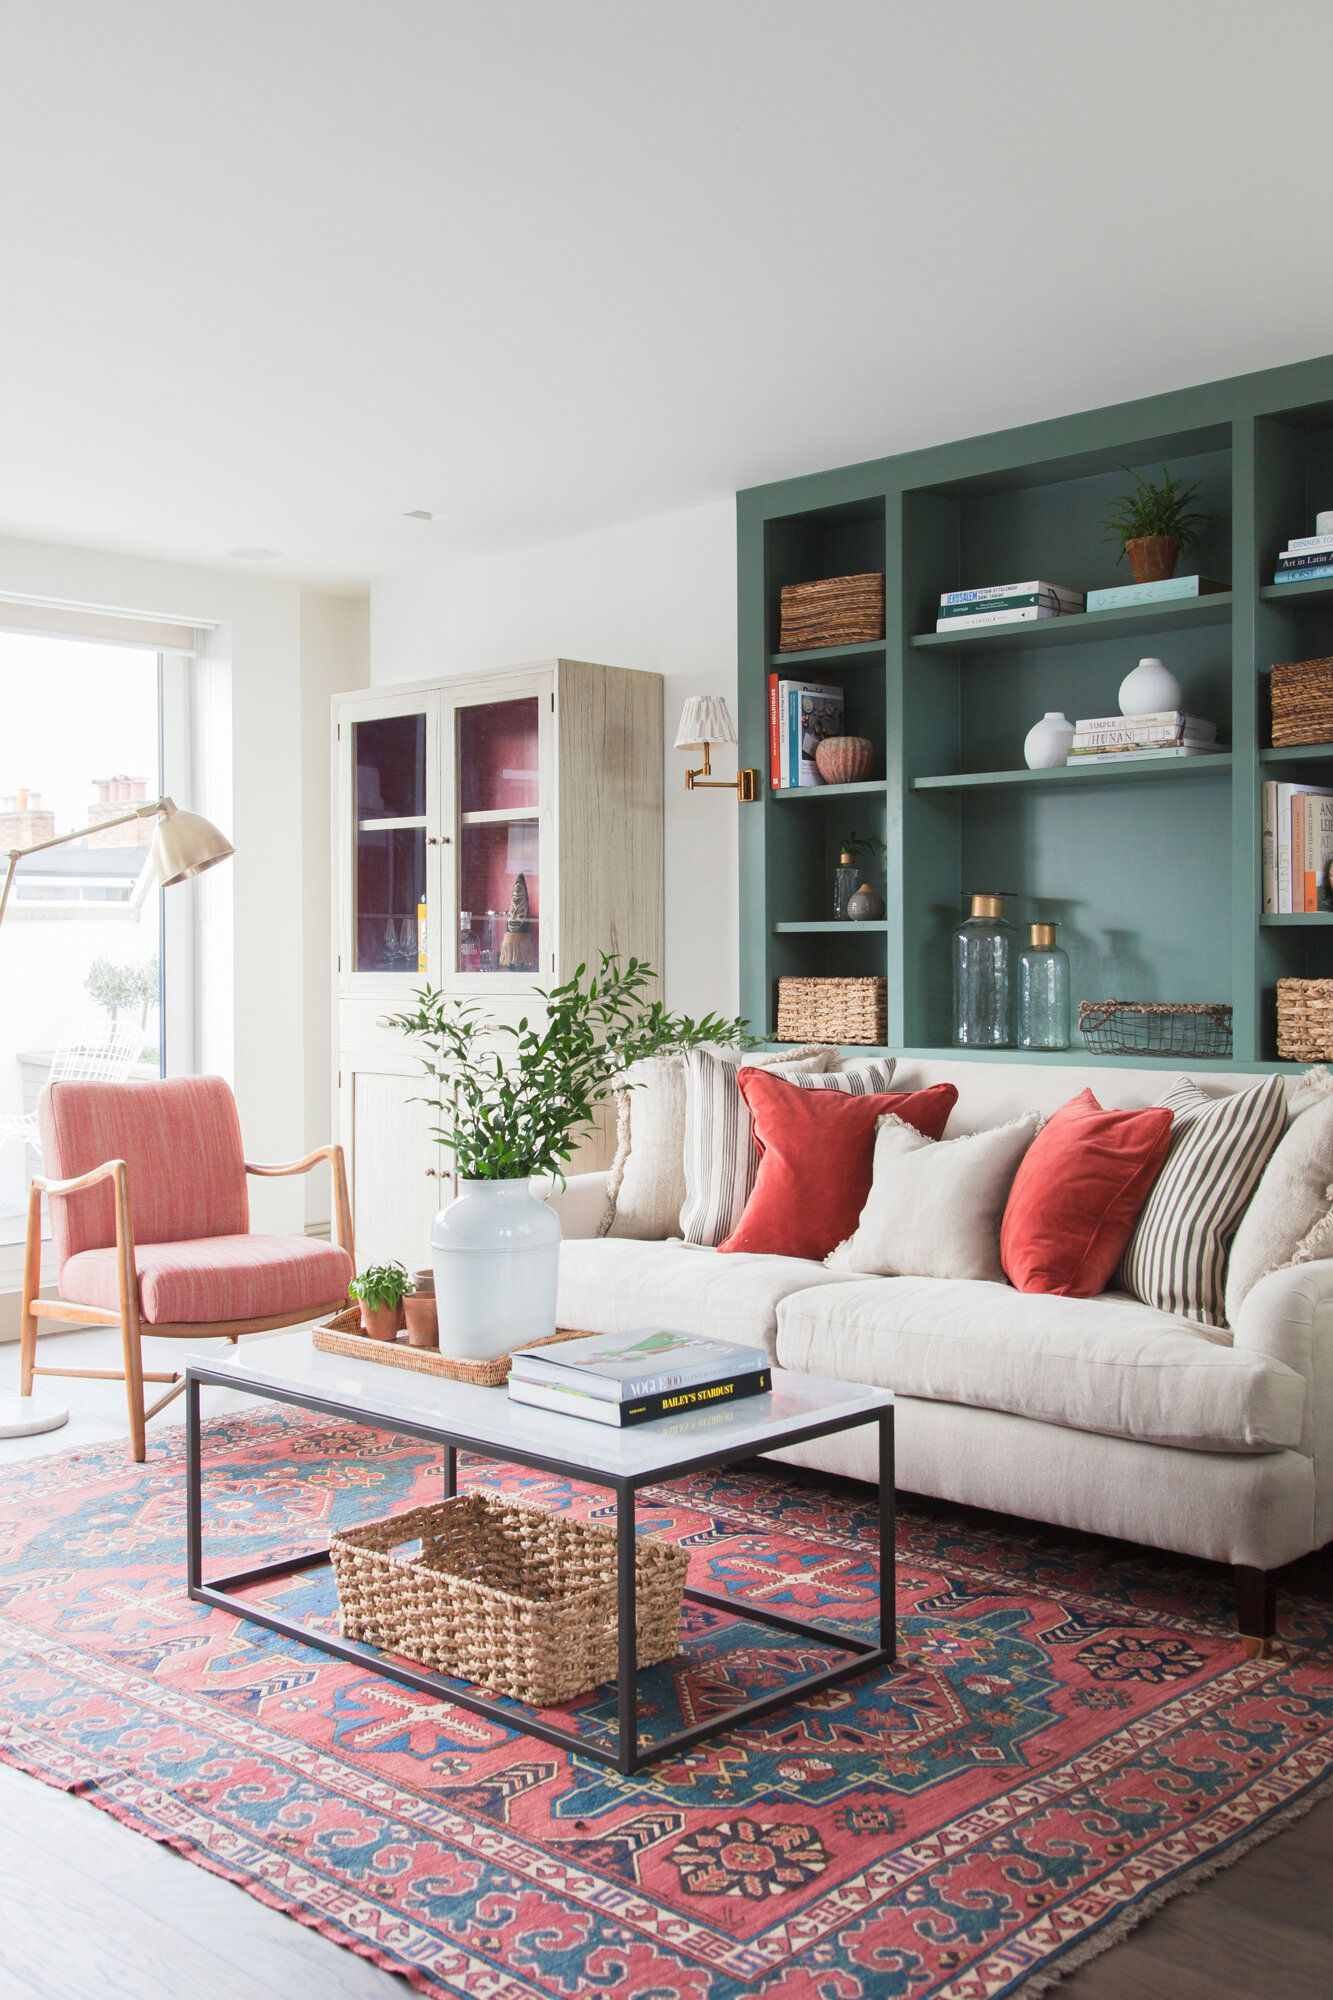 10 Home Décor Items to Toss in Your 30s